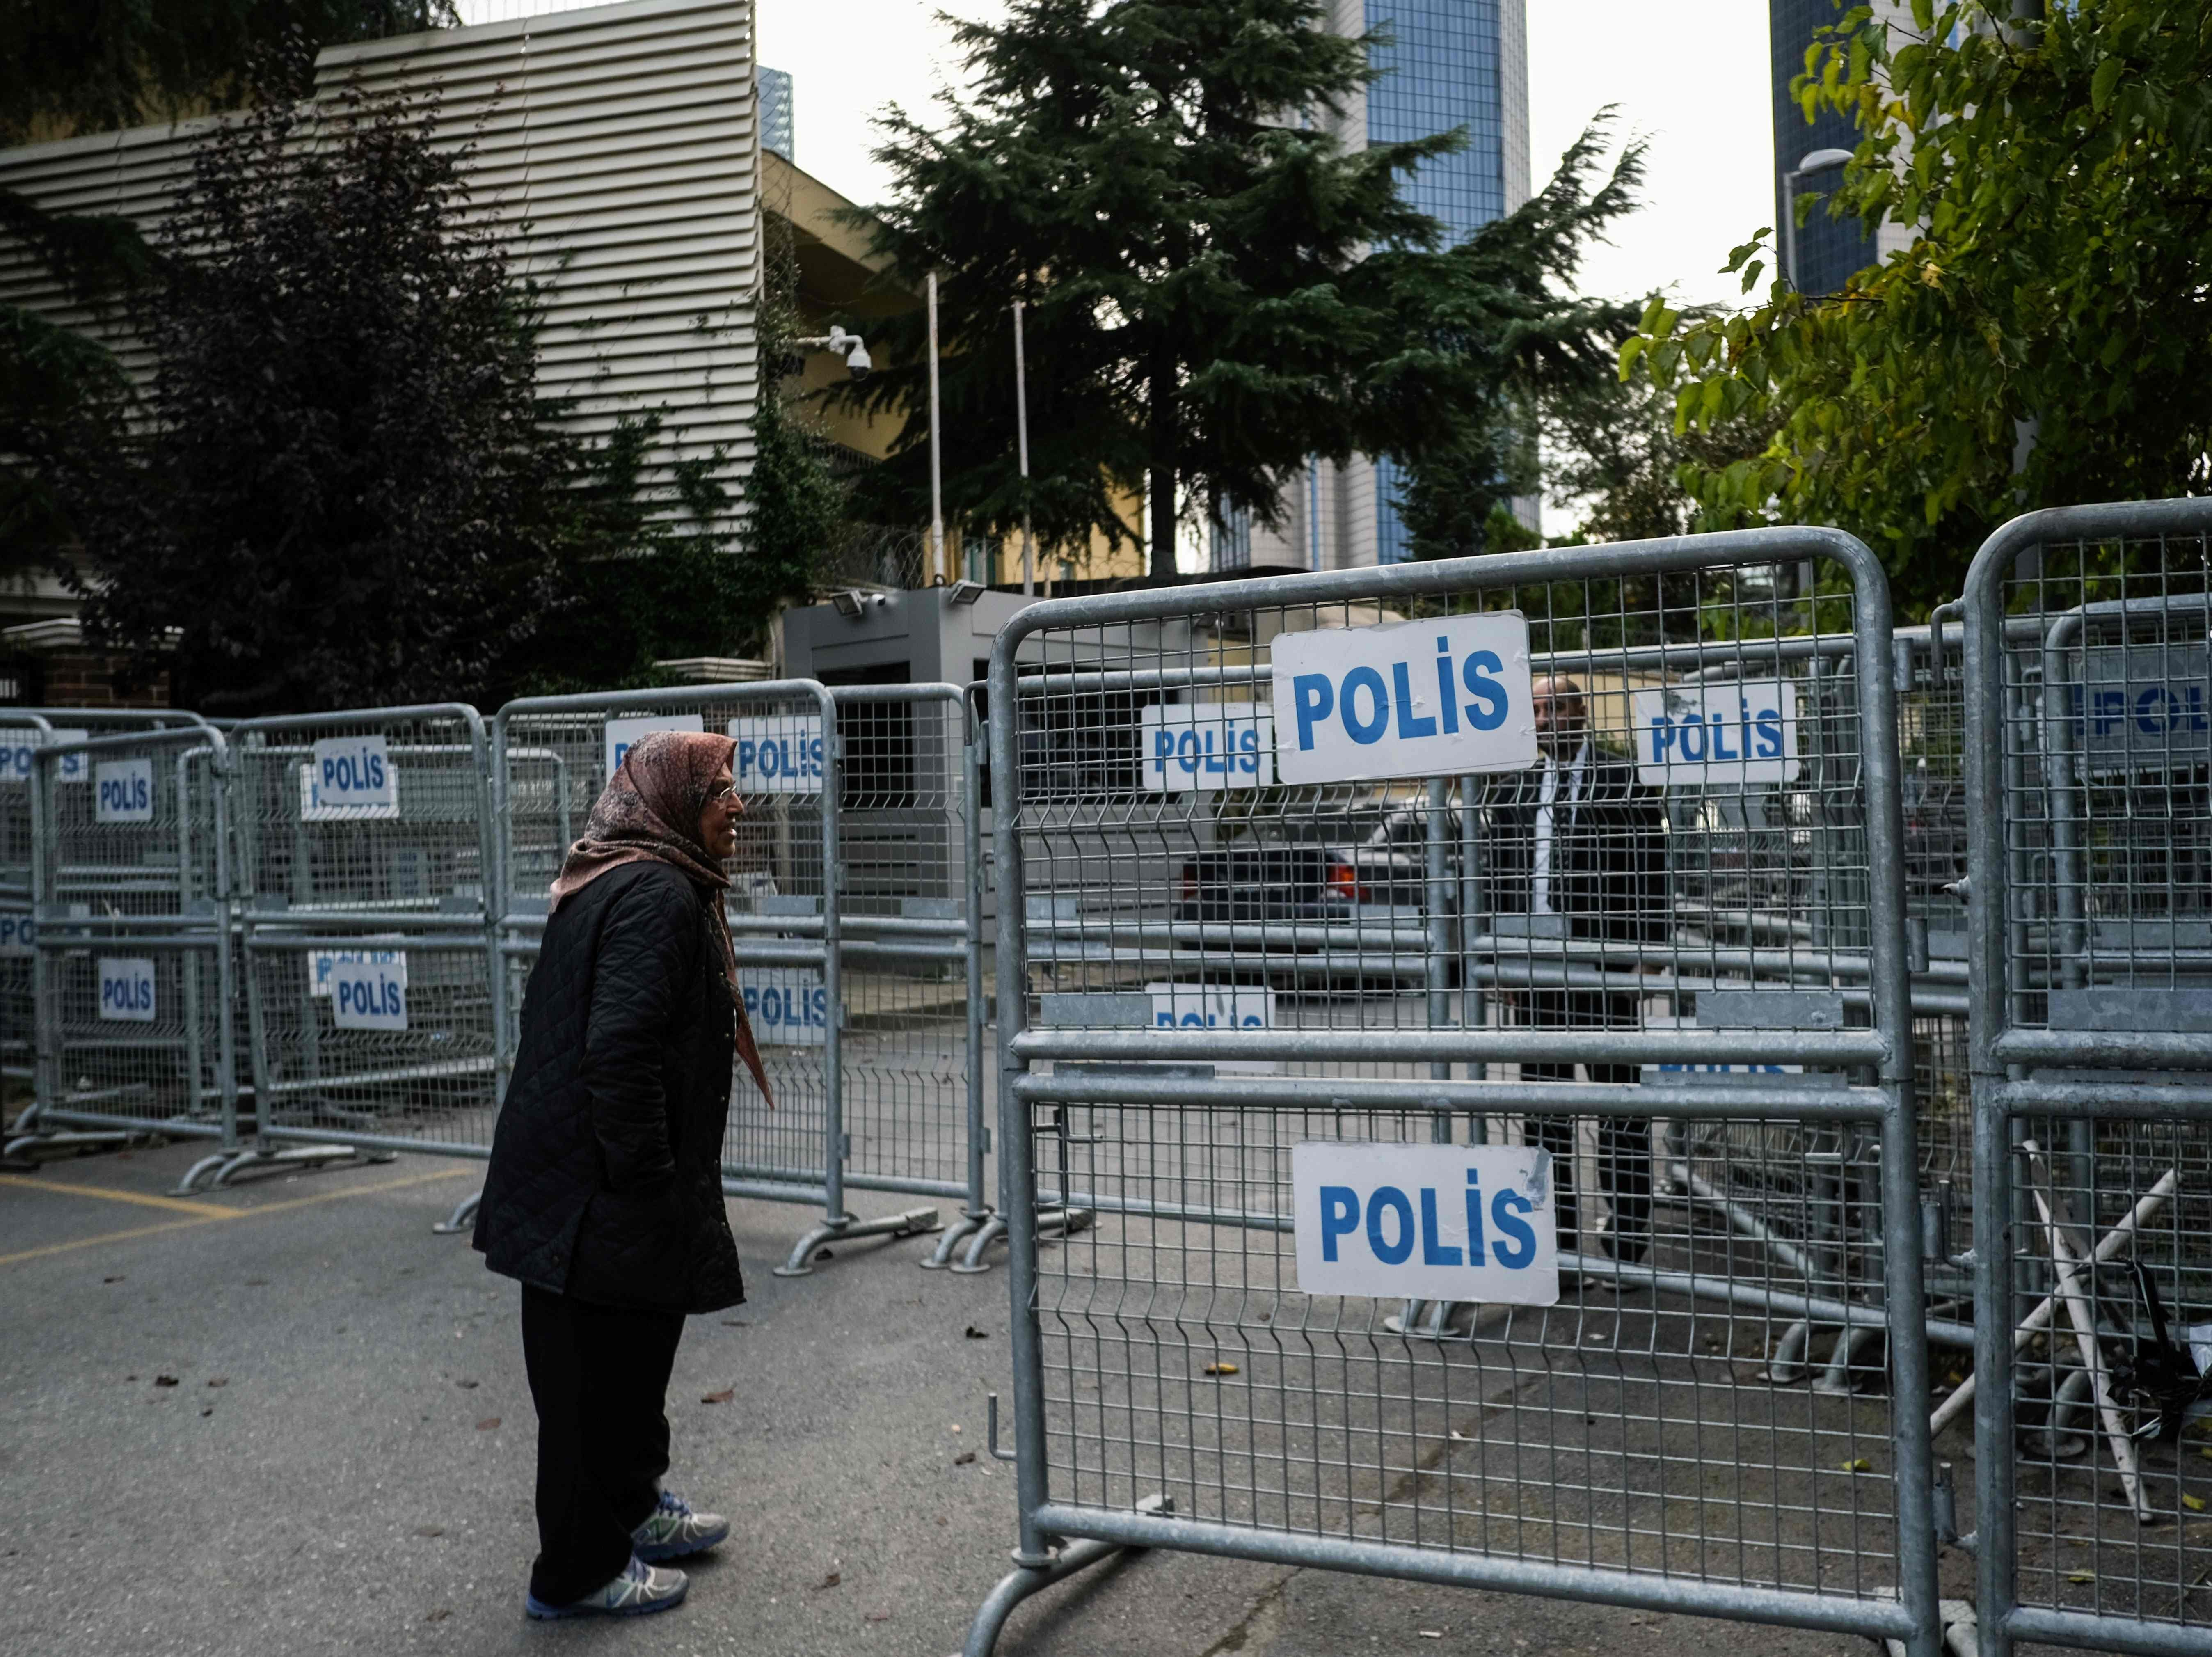 """A woman stands next to police barriers, in front of the Saudi consulate in Istanbul, on Oct. 20, 2018. Saudi Arabia admitted on October 20, 2018 that critic Jamal Khashoggi was killed inside its Istanbul consulate, saying he died during a """"brawl"""", as Turkey vowed to release the full findings of its own investigation."""